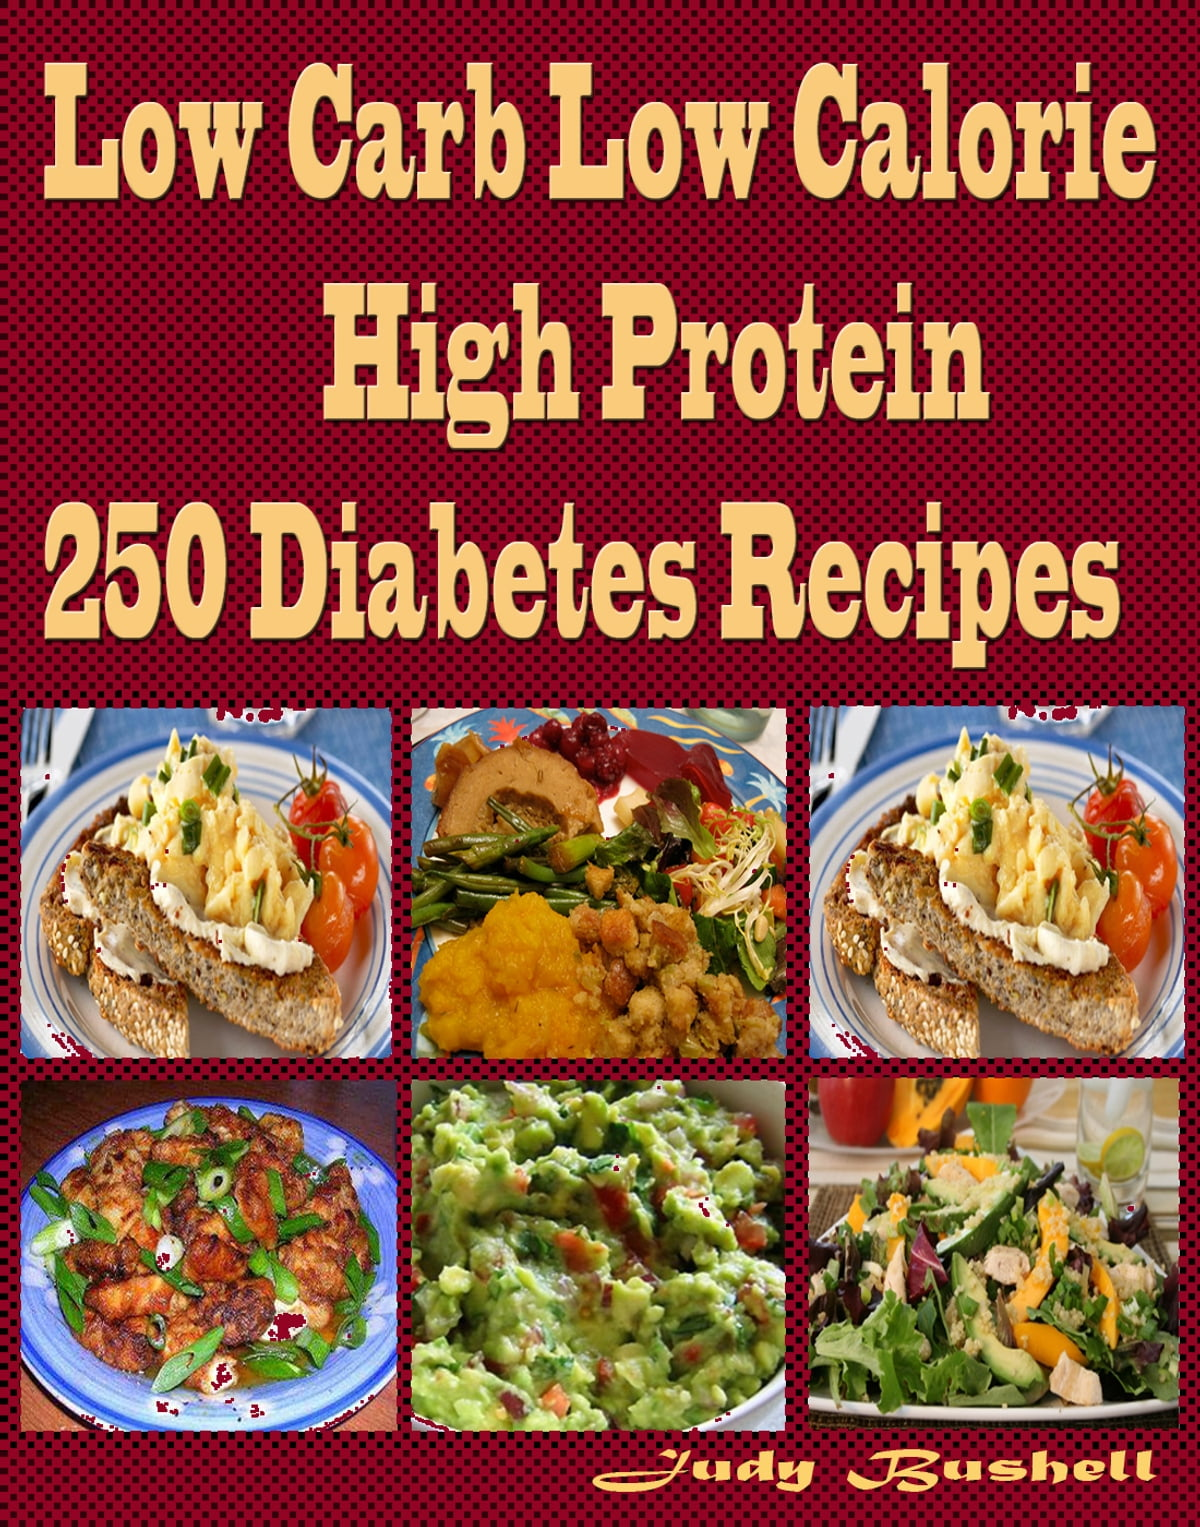 Low Carb Low Calorie High Protein 250 Diabetes Recipes eBook by Judy Bushell - 1230000311786 | Rakuten Kobo